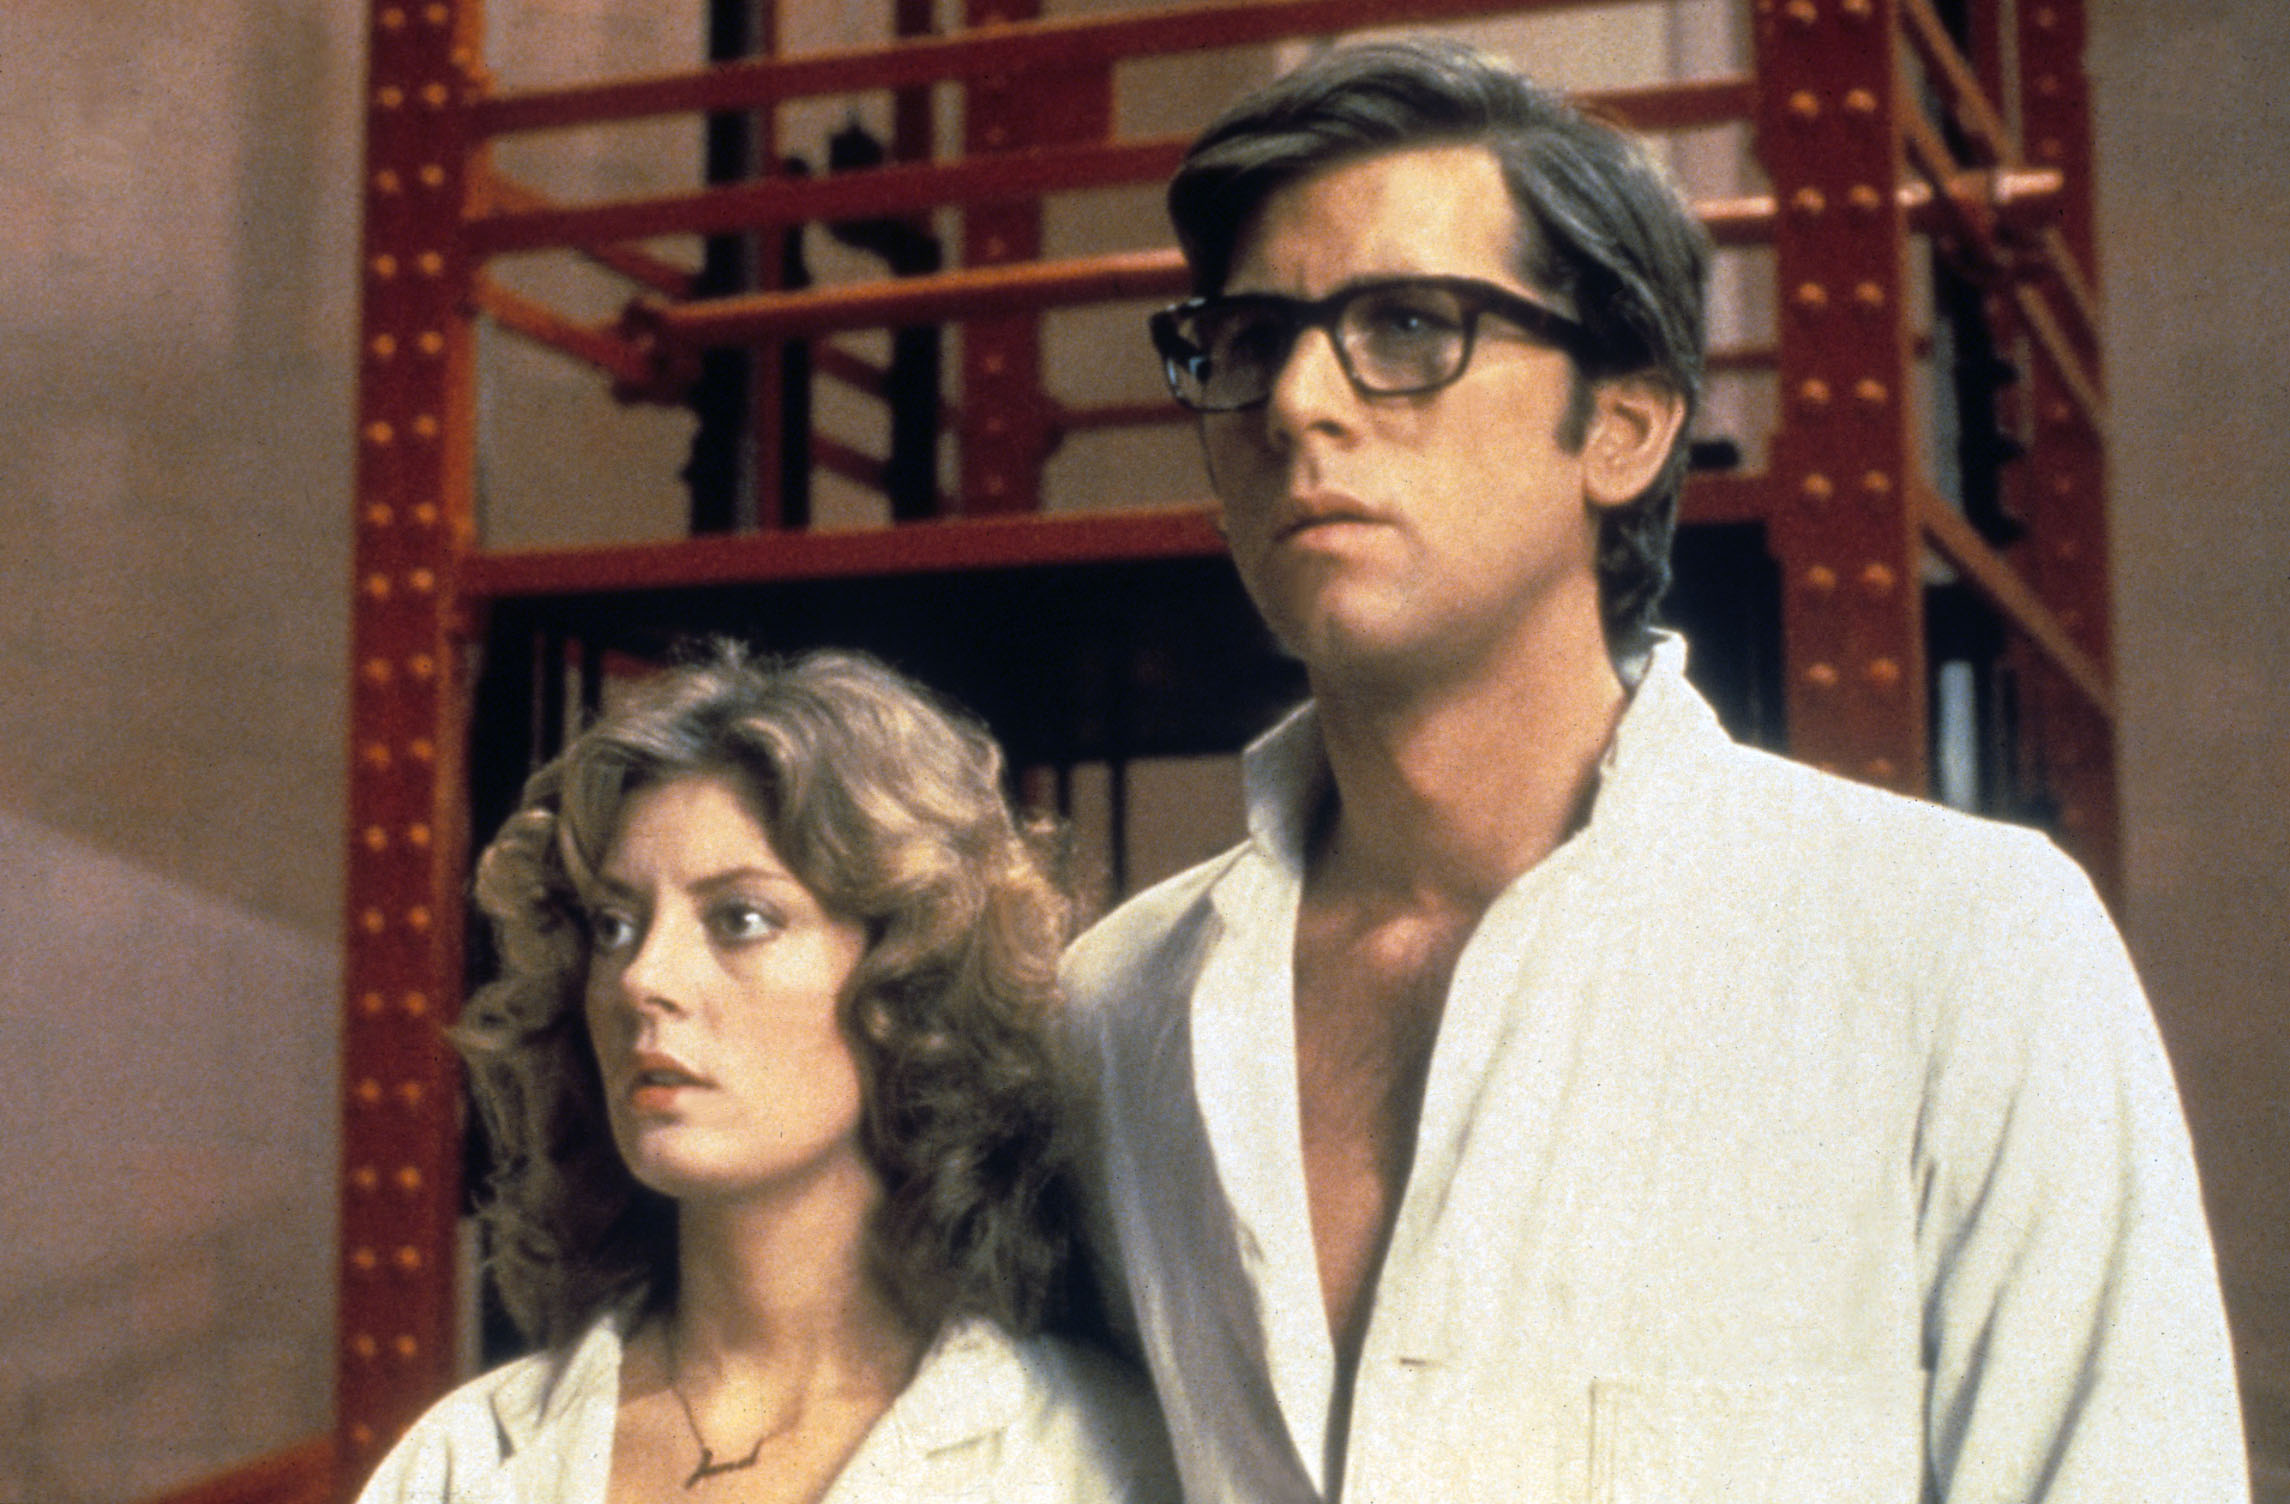 THE ROCKY HORROR PICTURE SHOW  [US / BR 1975]  SUSAN SARANDON, BARRY BOSTWICK     Date: 1975 (Mary Evans Picture Library) Kei